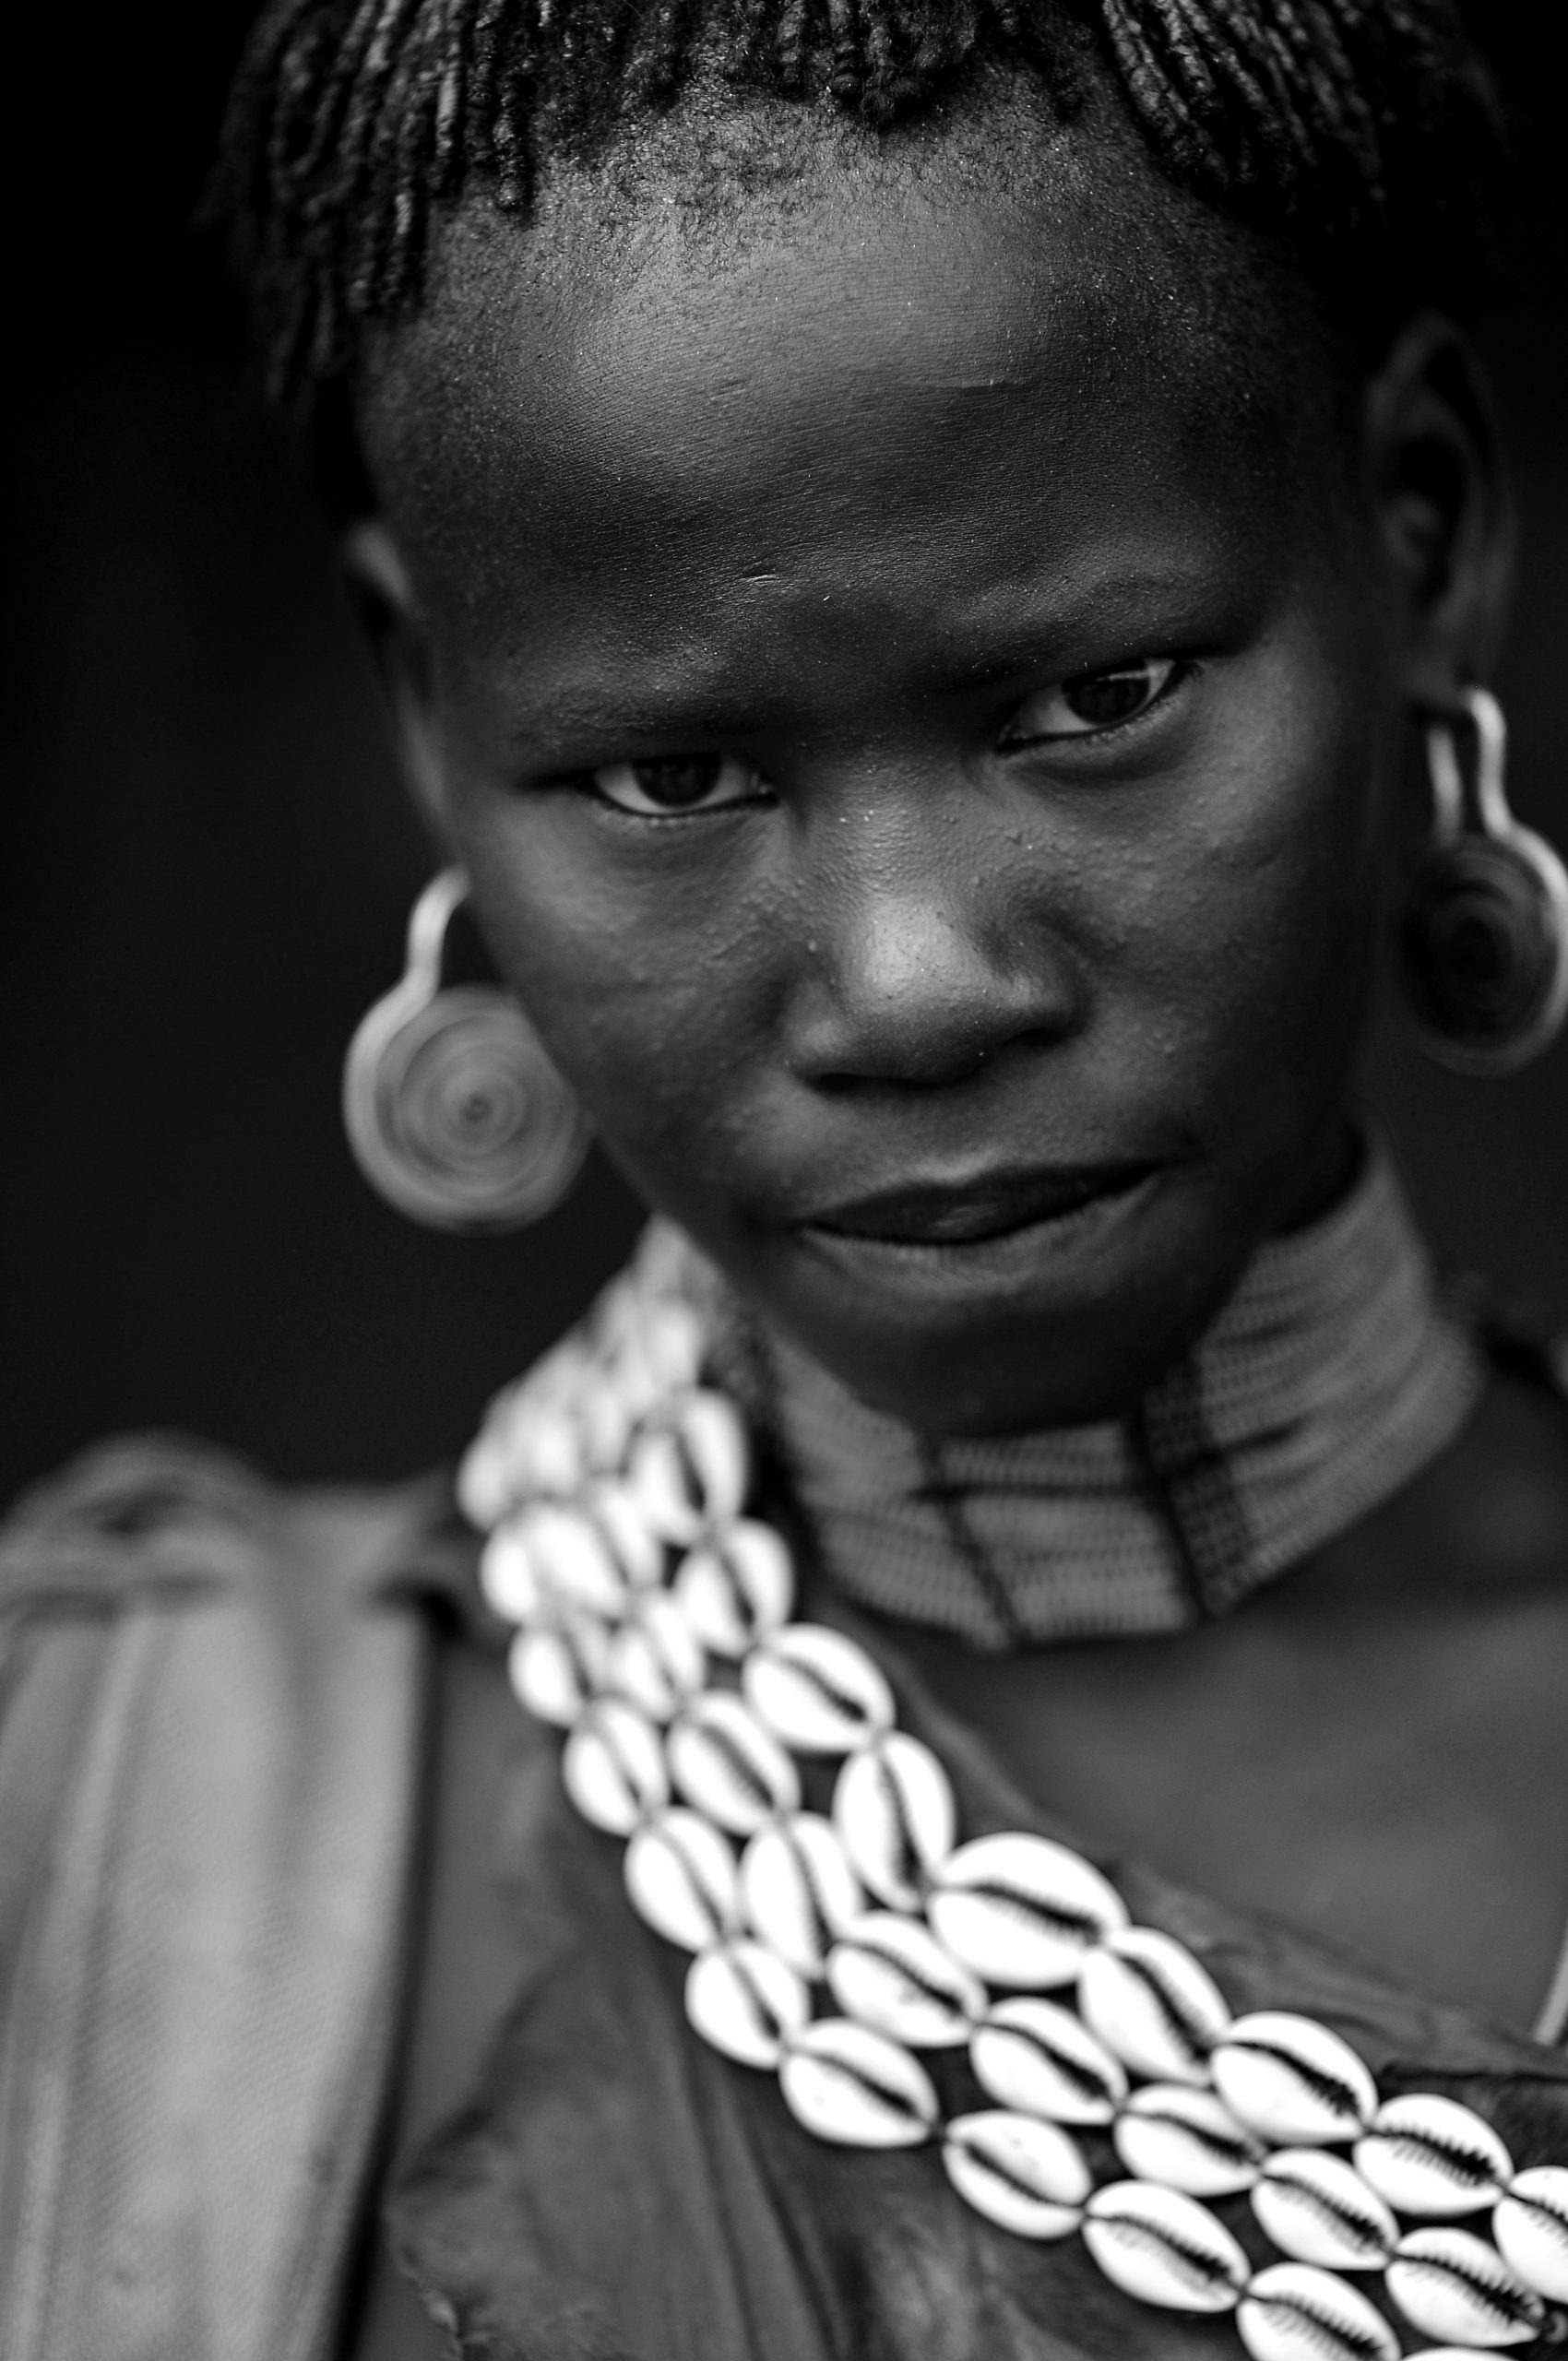 Members of the Arbore tribe in the Omo region, Ethiopia